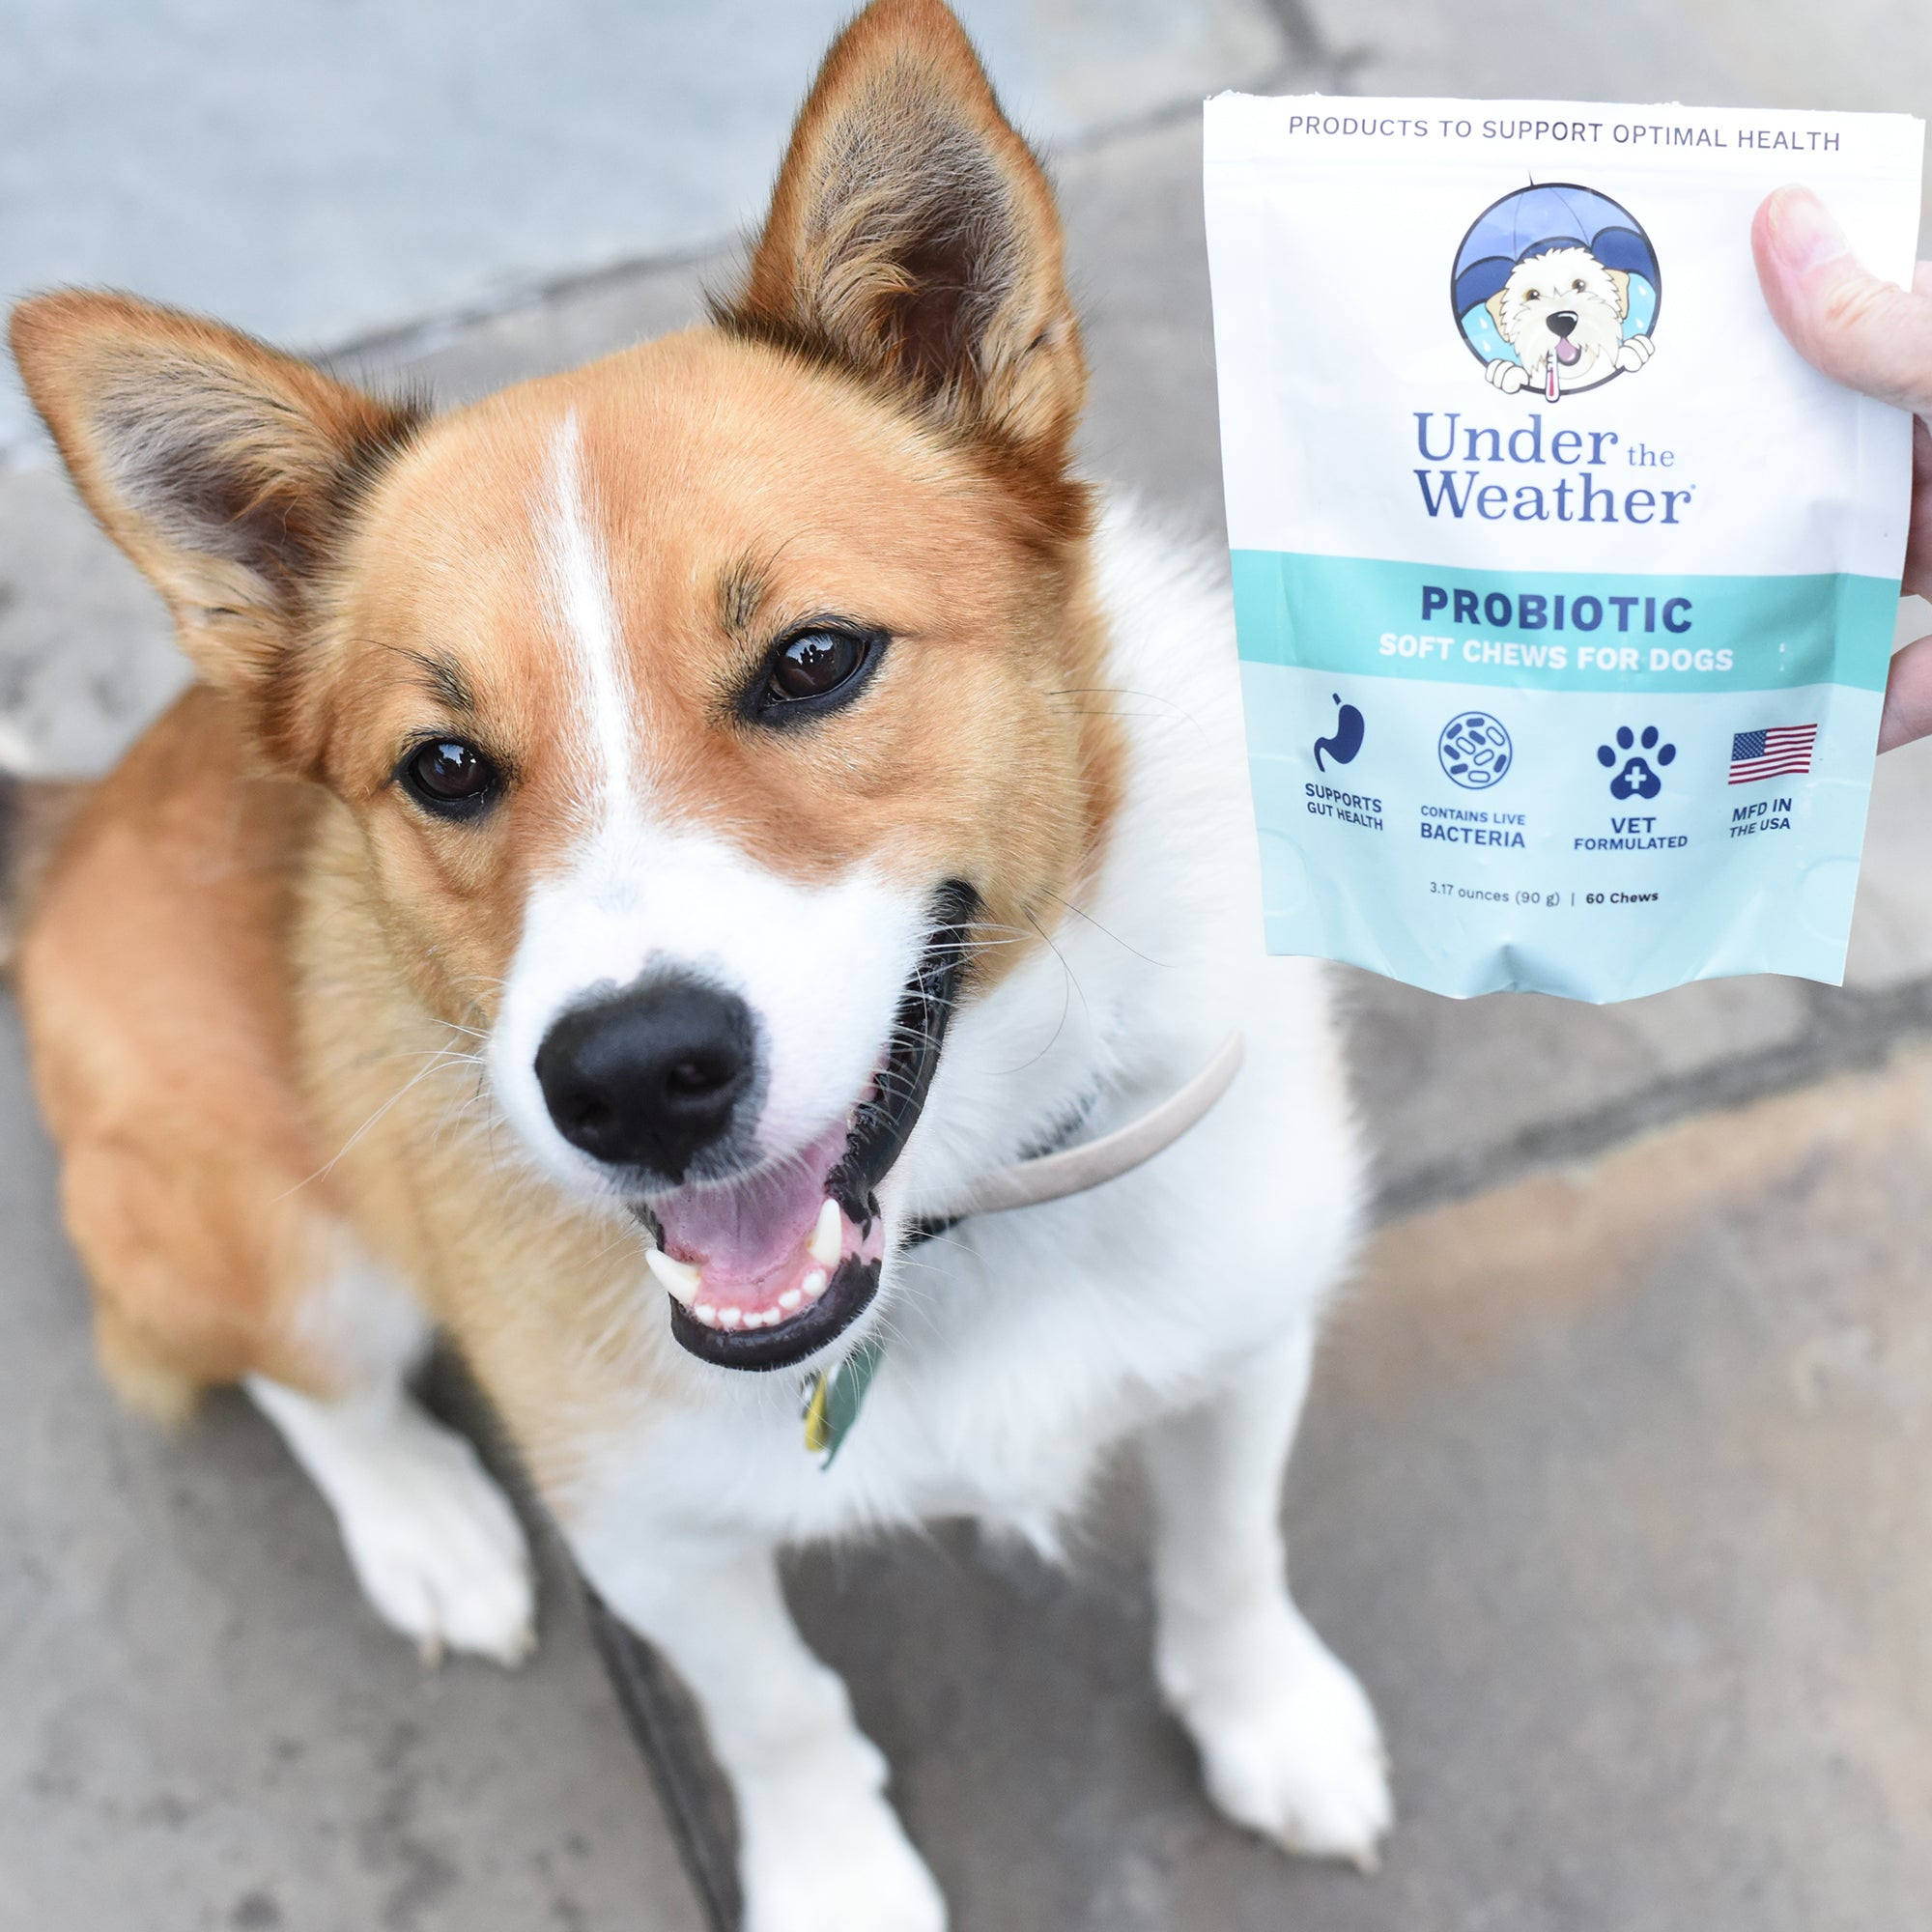 Probiotic Soft Chews & Anti-Diarrhea For Dogs